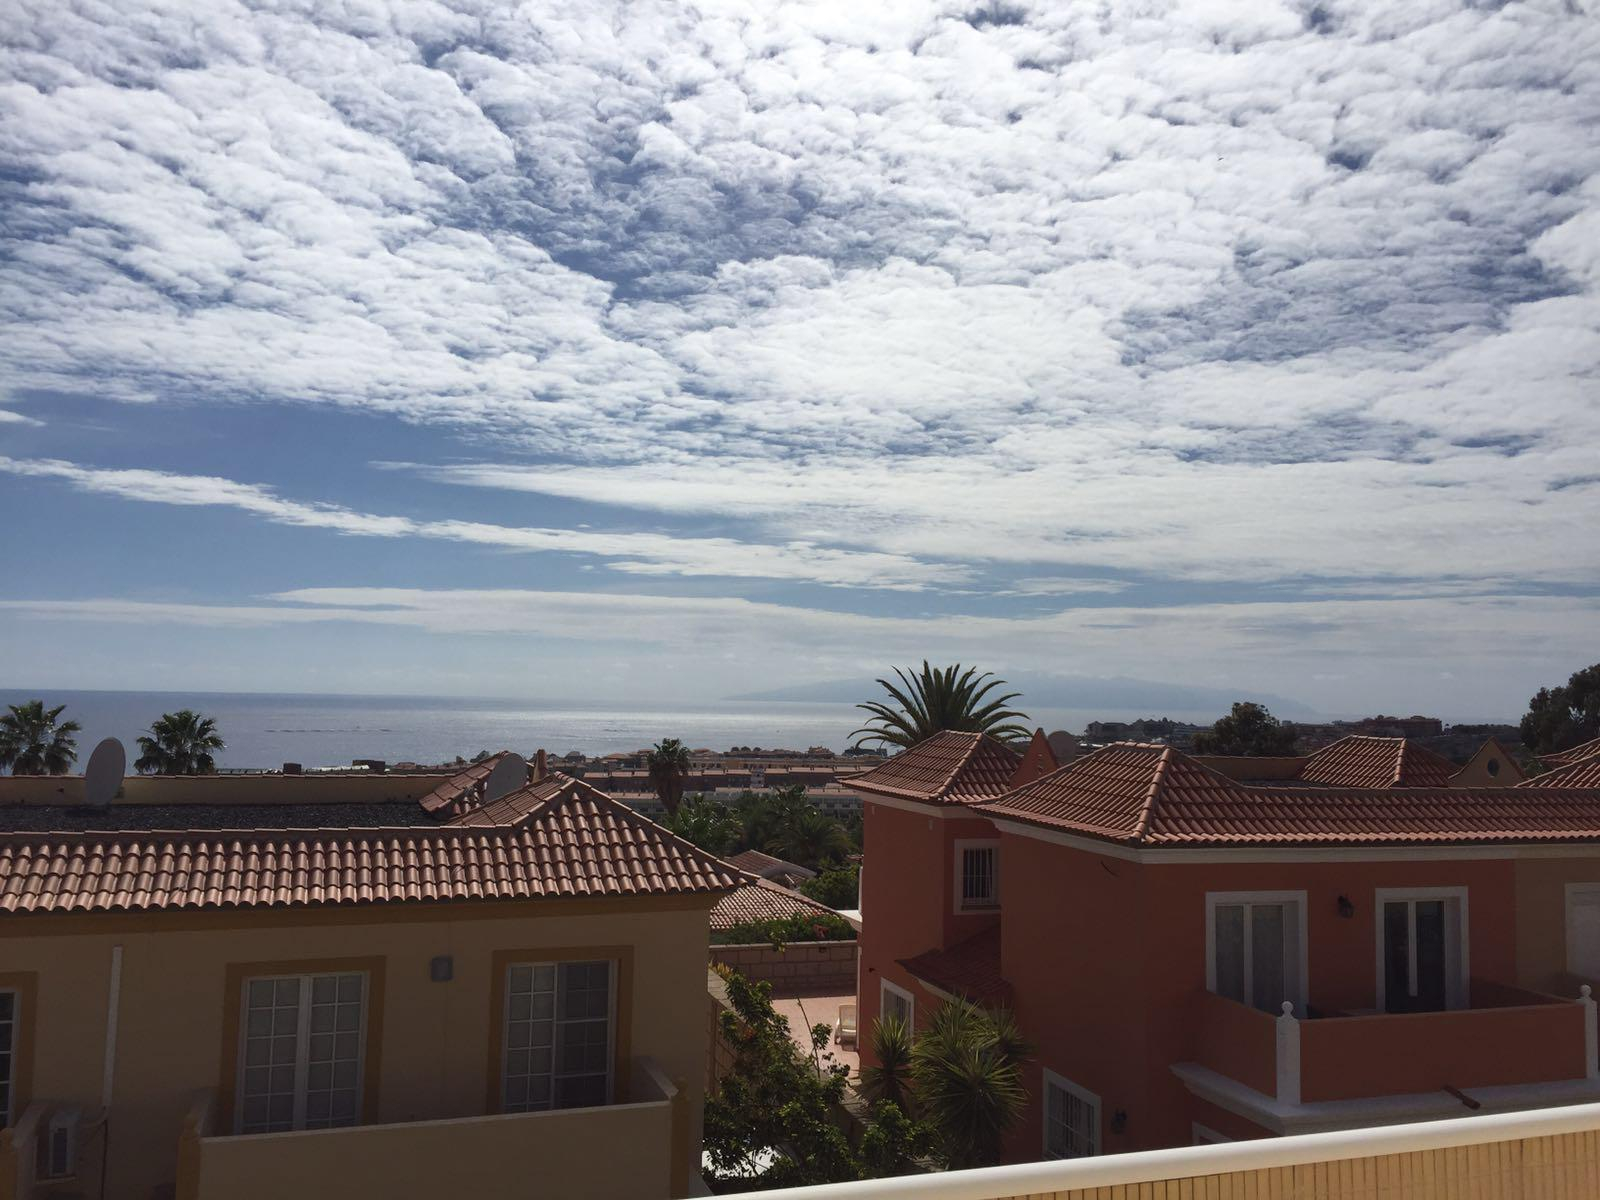 Properties for Sale in Tenerife, Canary Islands, Spain | SylkWayStar Real Estate. Townhouse 5 bedrooms Madroñal. Image-25127